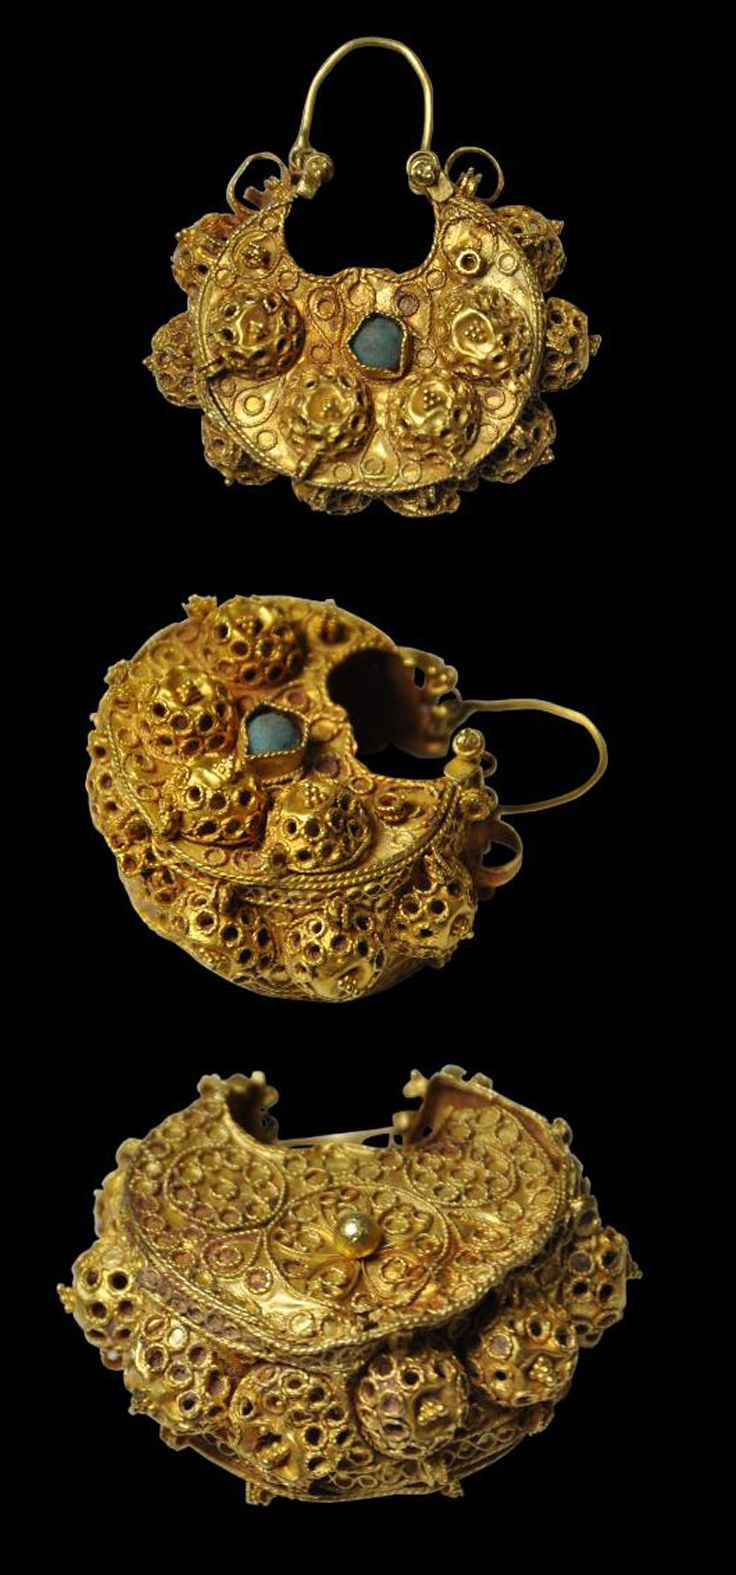 Gold earring set with turquoise - Iran, Iraq or Syria. Circa 11th-12th century.: